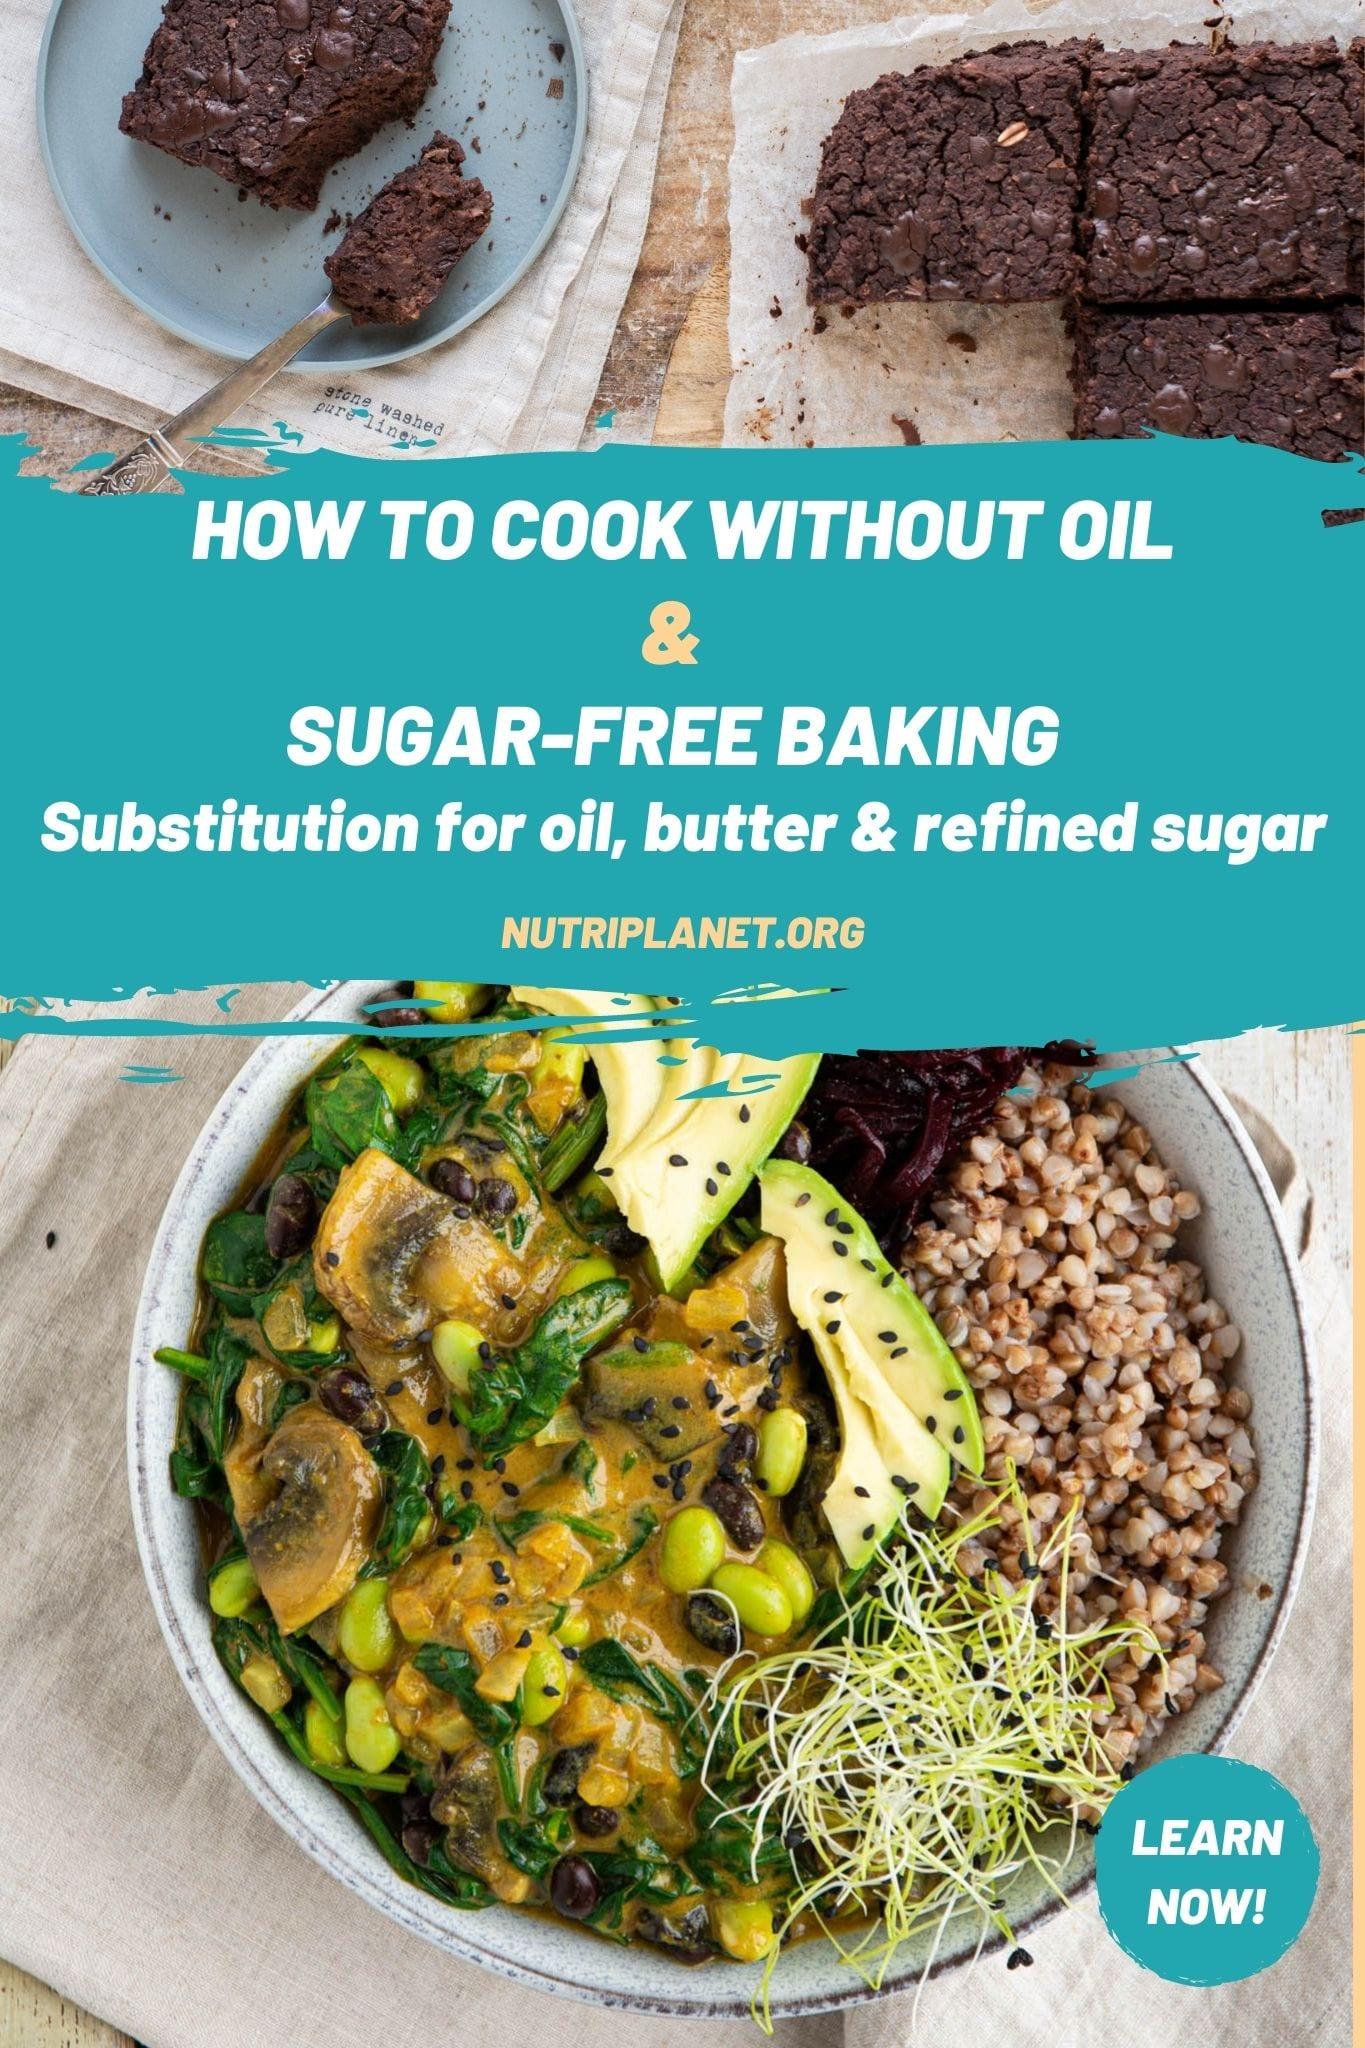 Learn how to cook without oil and the secrets of sugar-free baking.